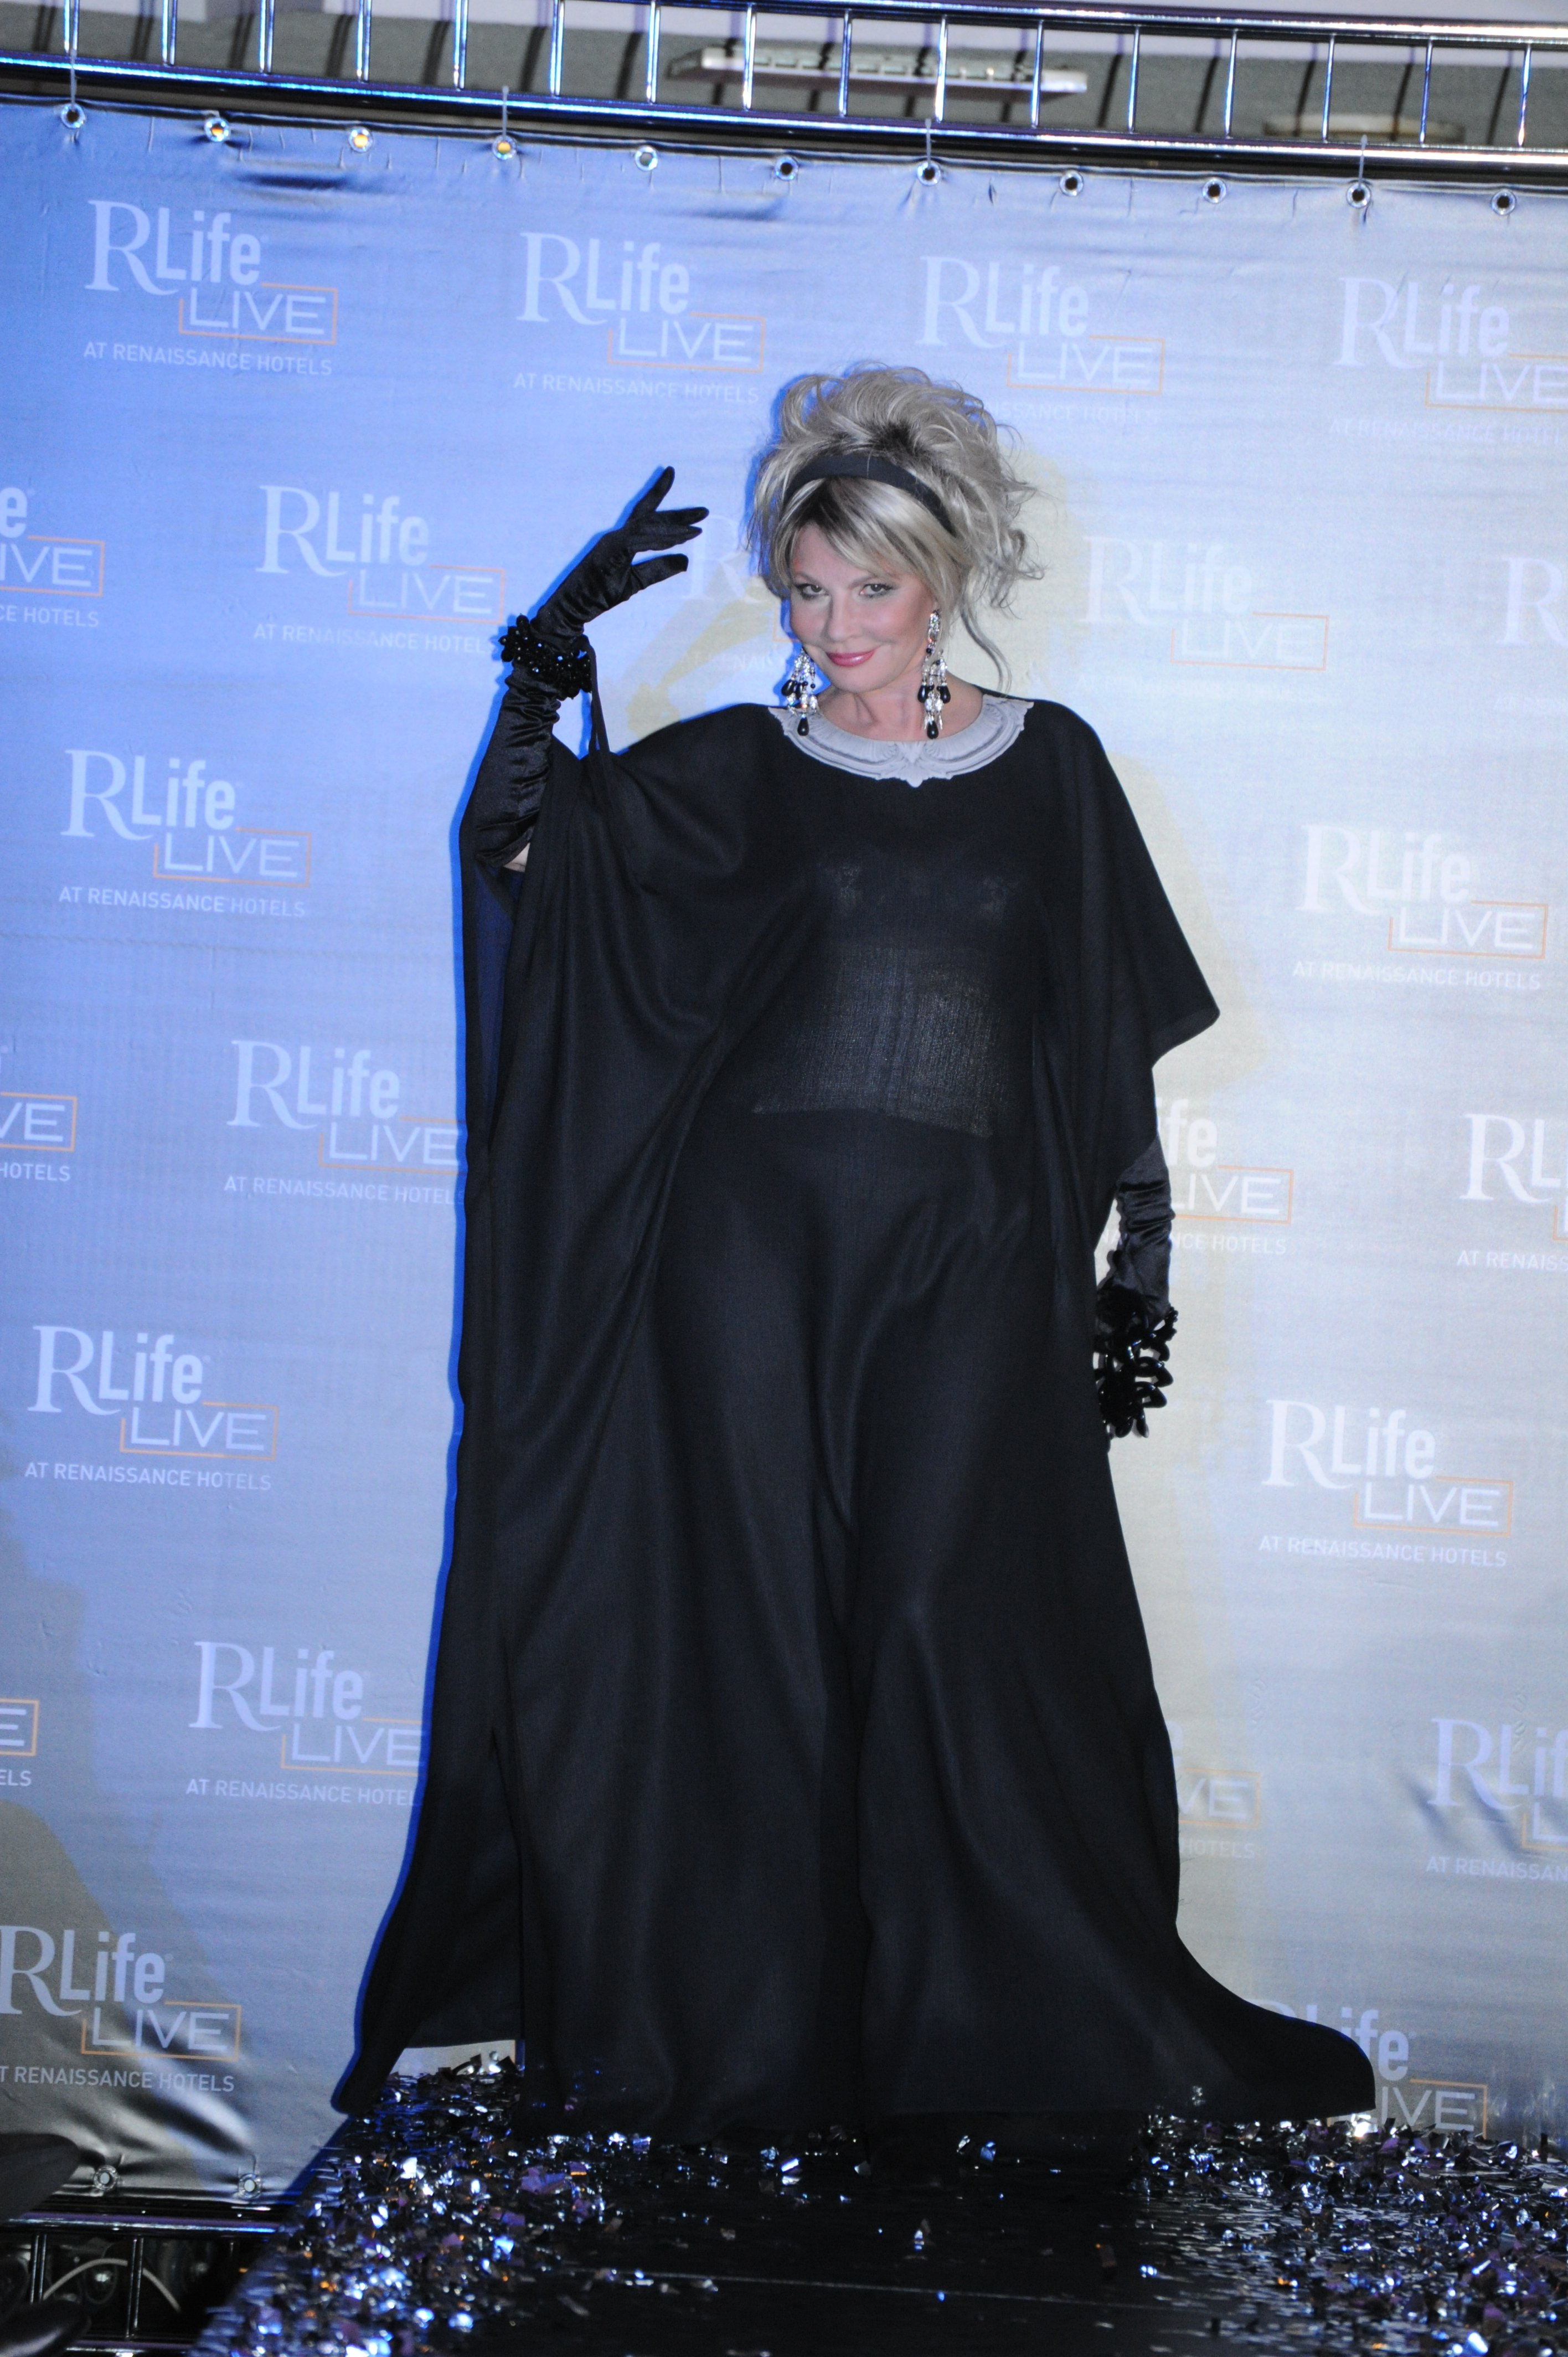 FASHION HALLOWEEN at the Renaissance Moscow Olympic hotel